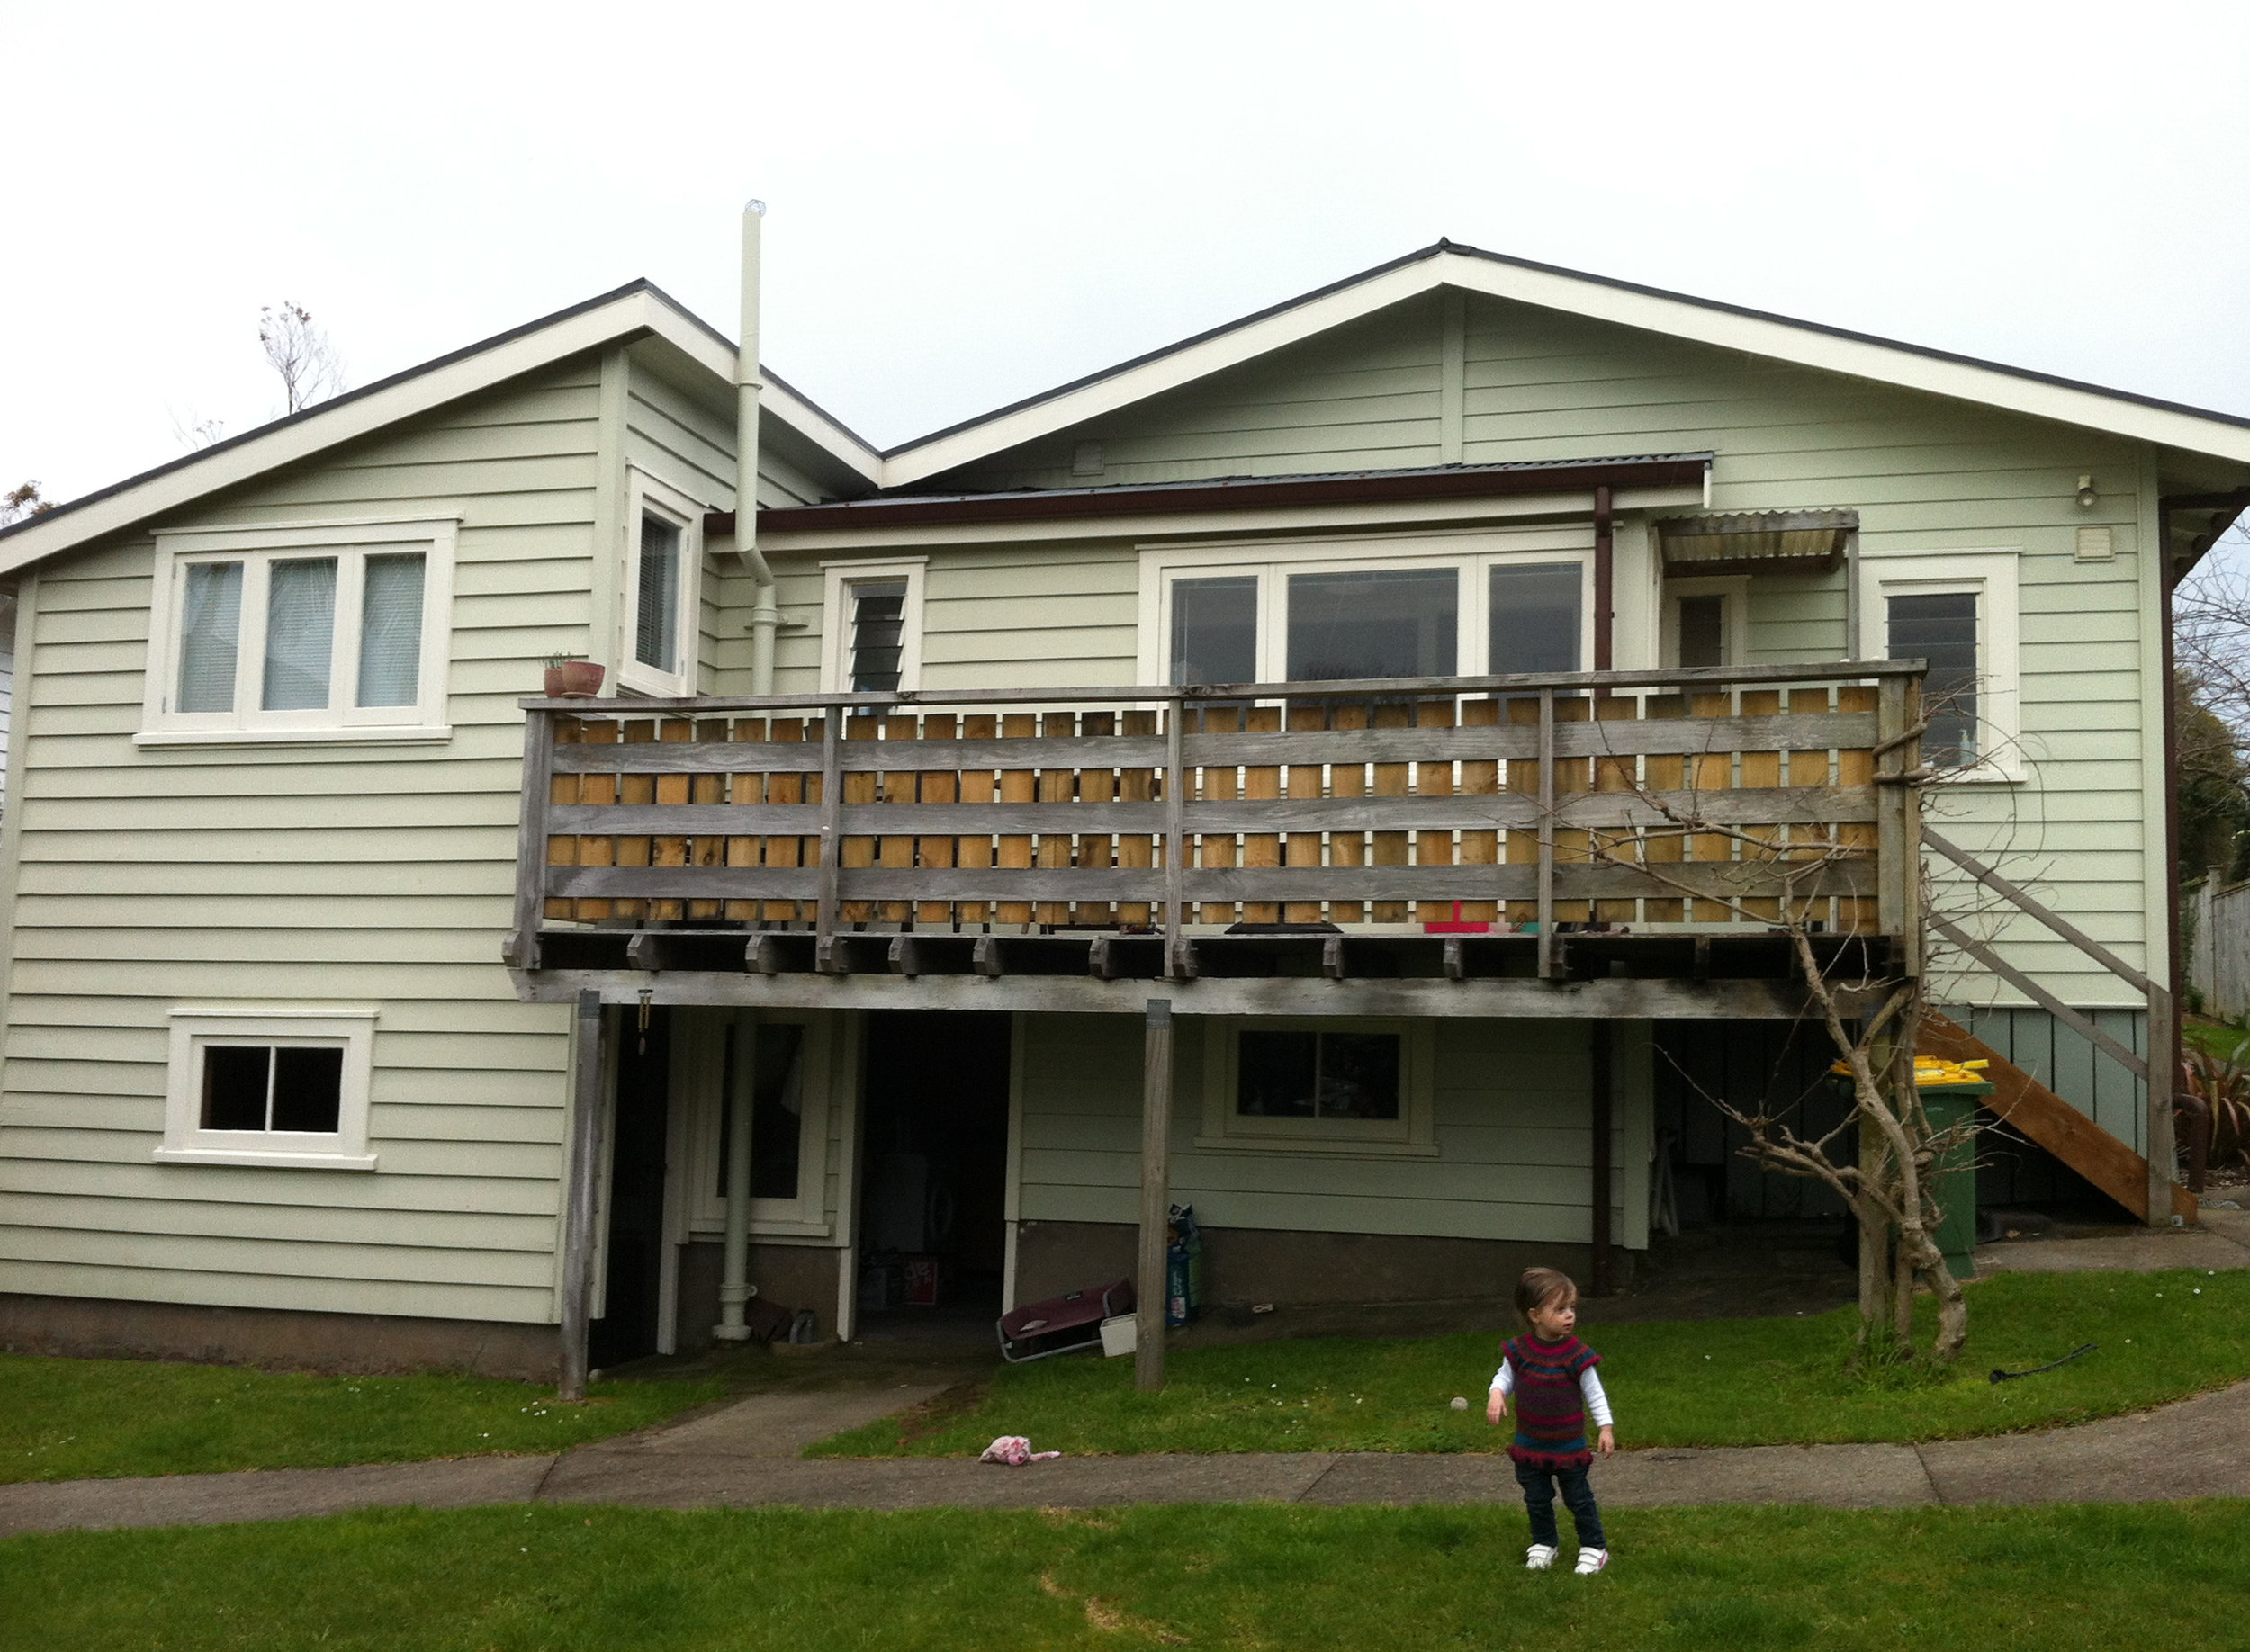 back of house prior to works